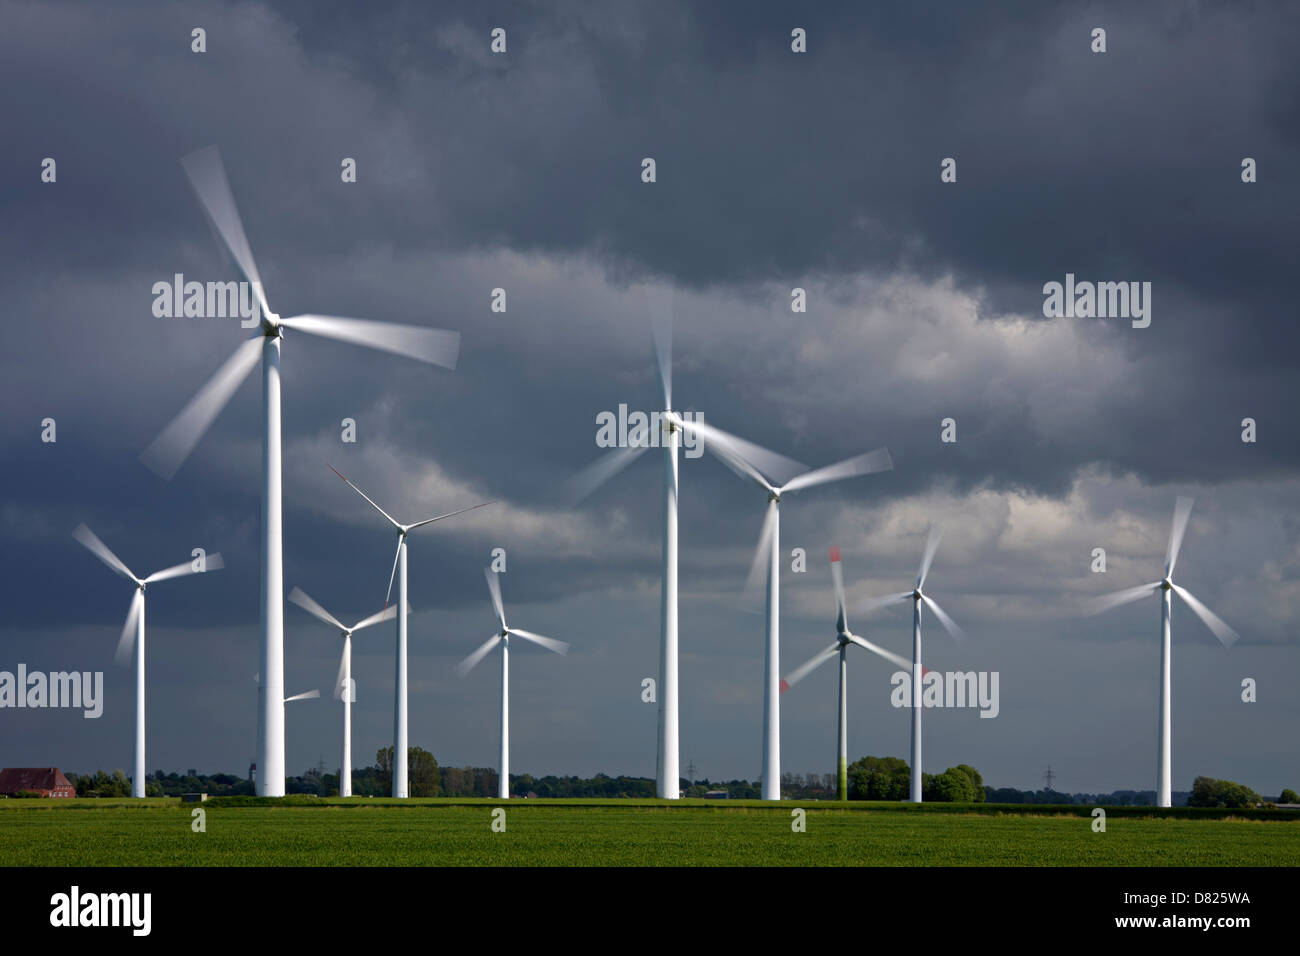 Motion blurred wind turbines at windfarm, renewable energy resource - Stock Image